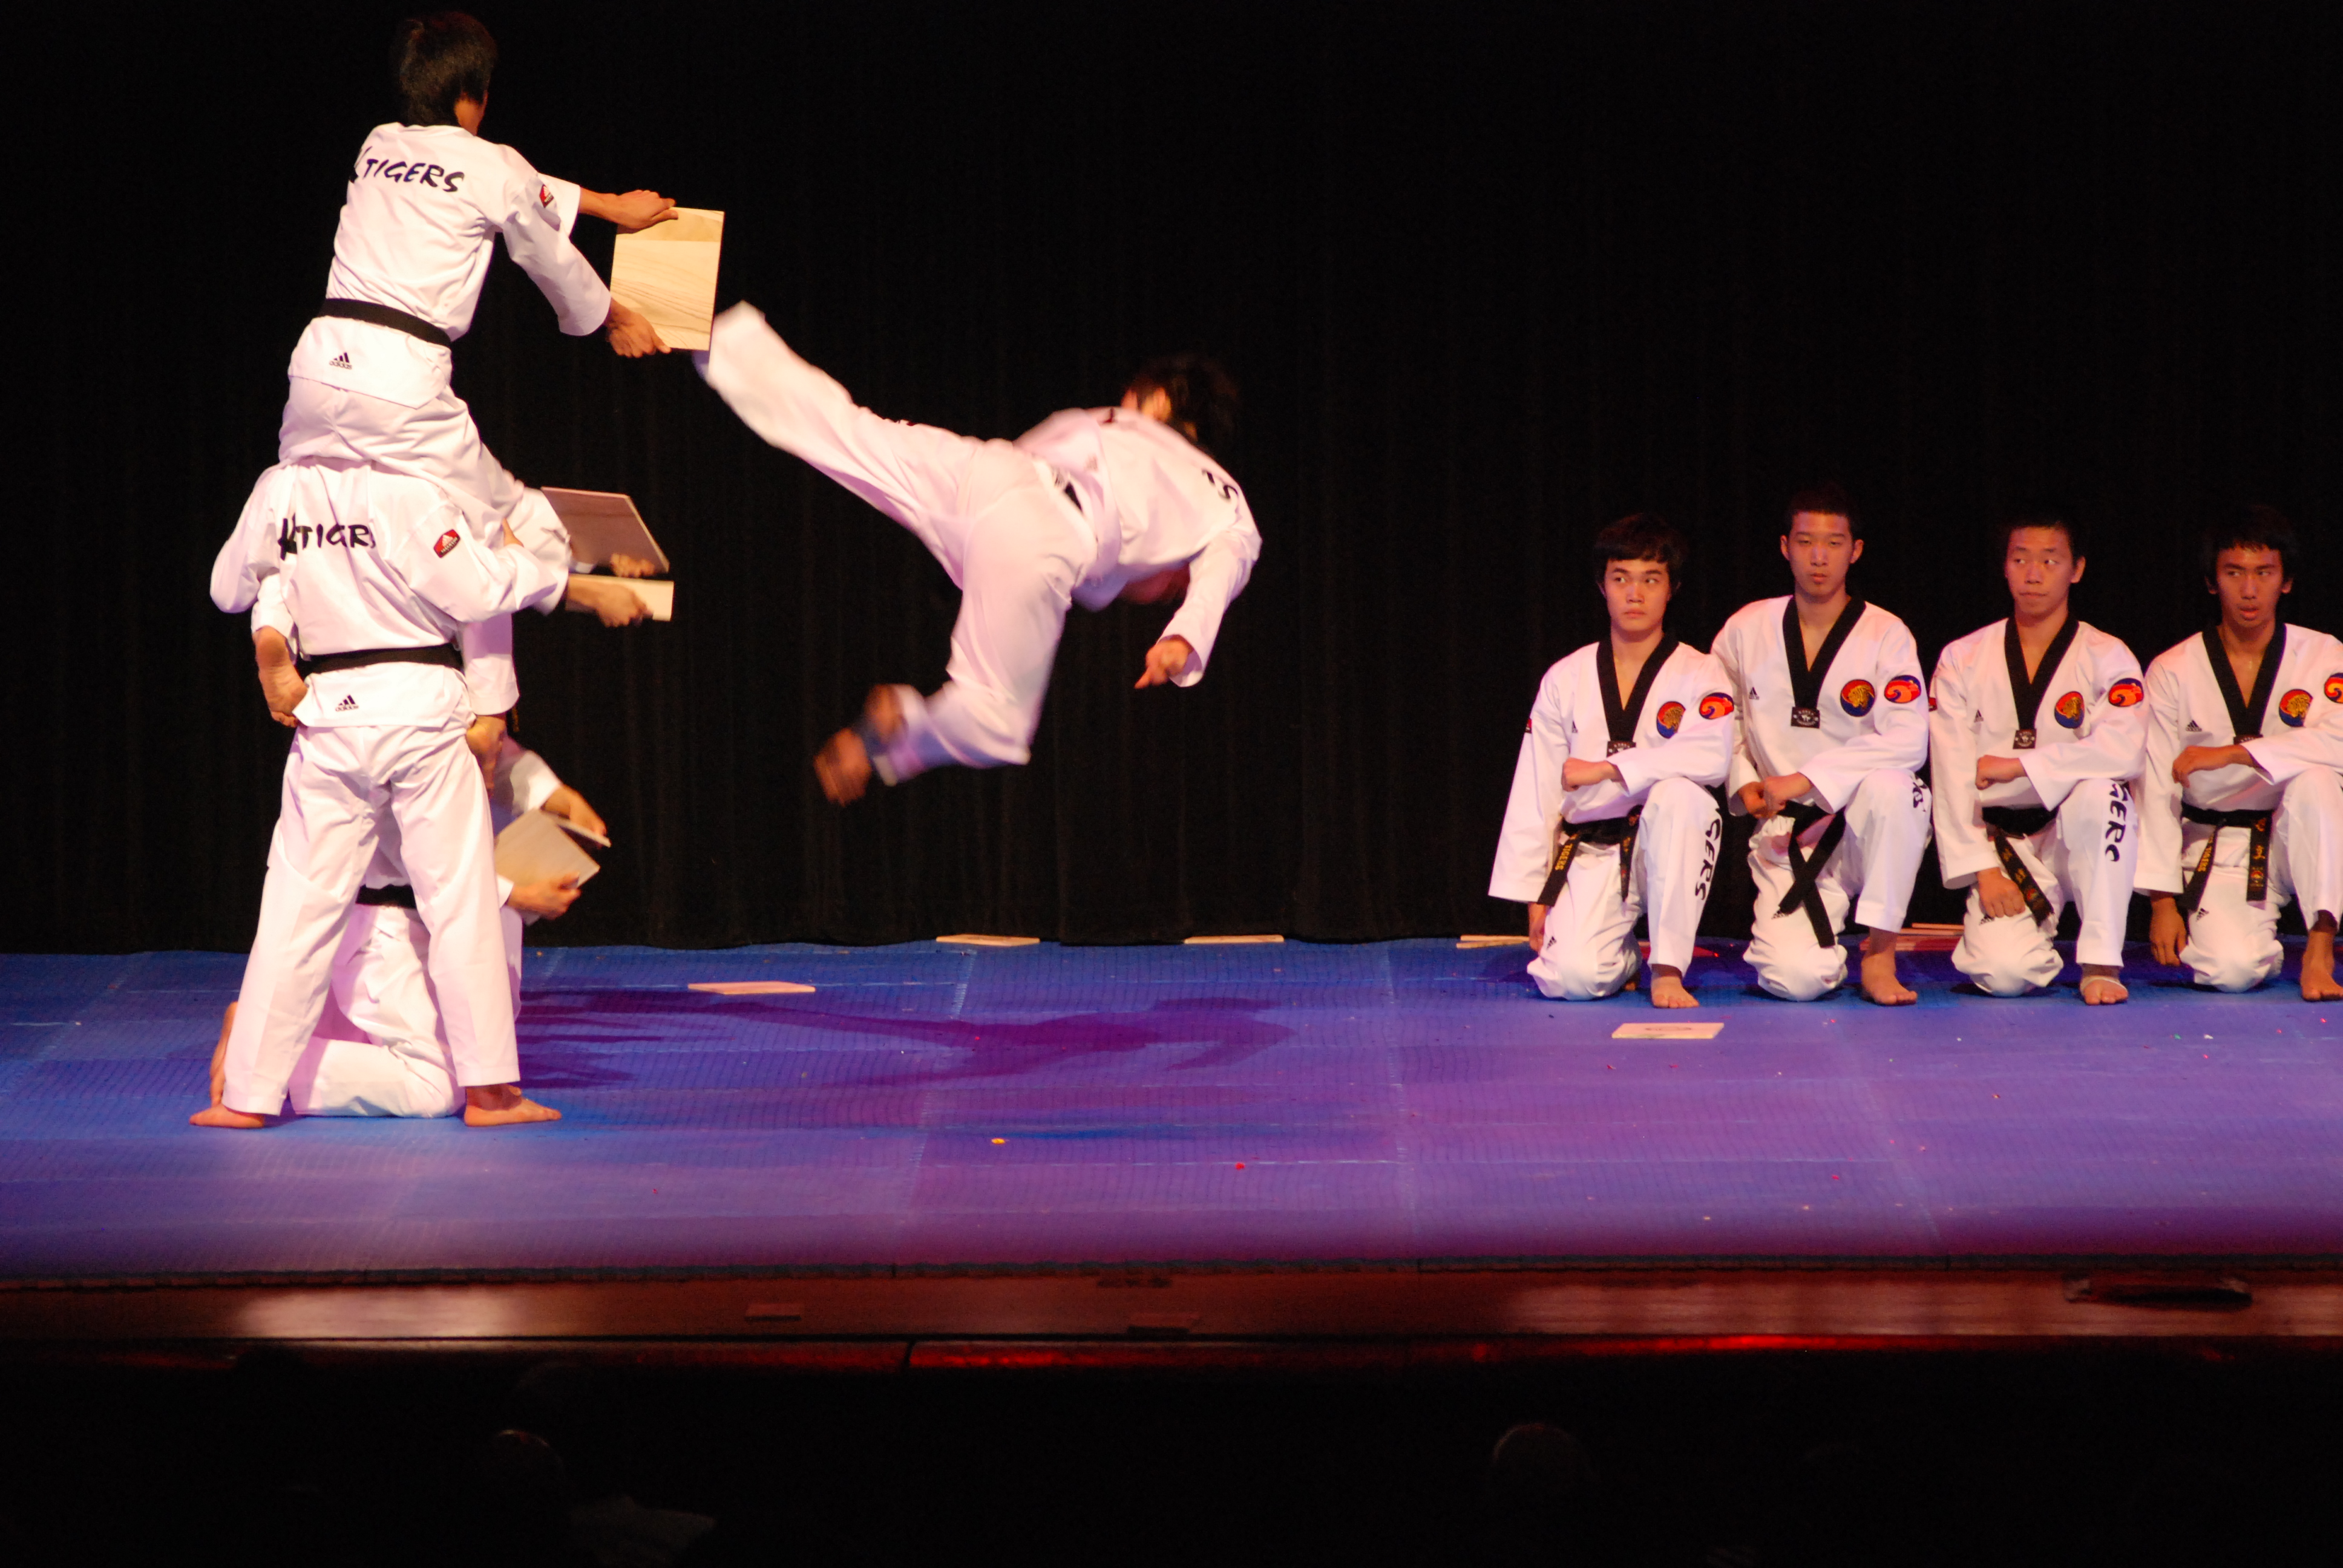 club taekwondo performance